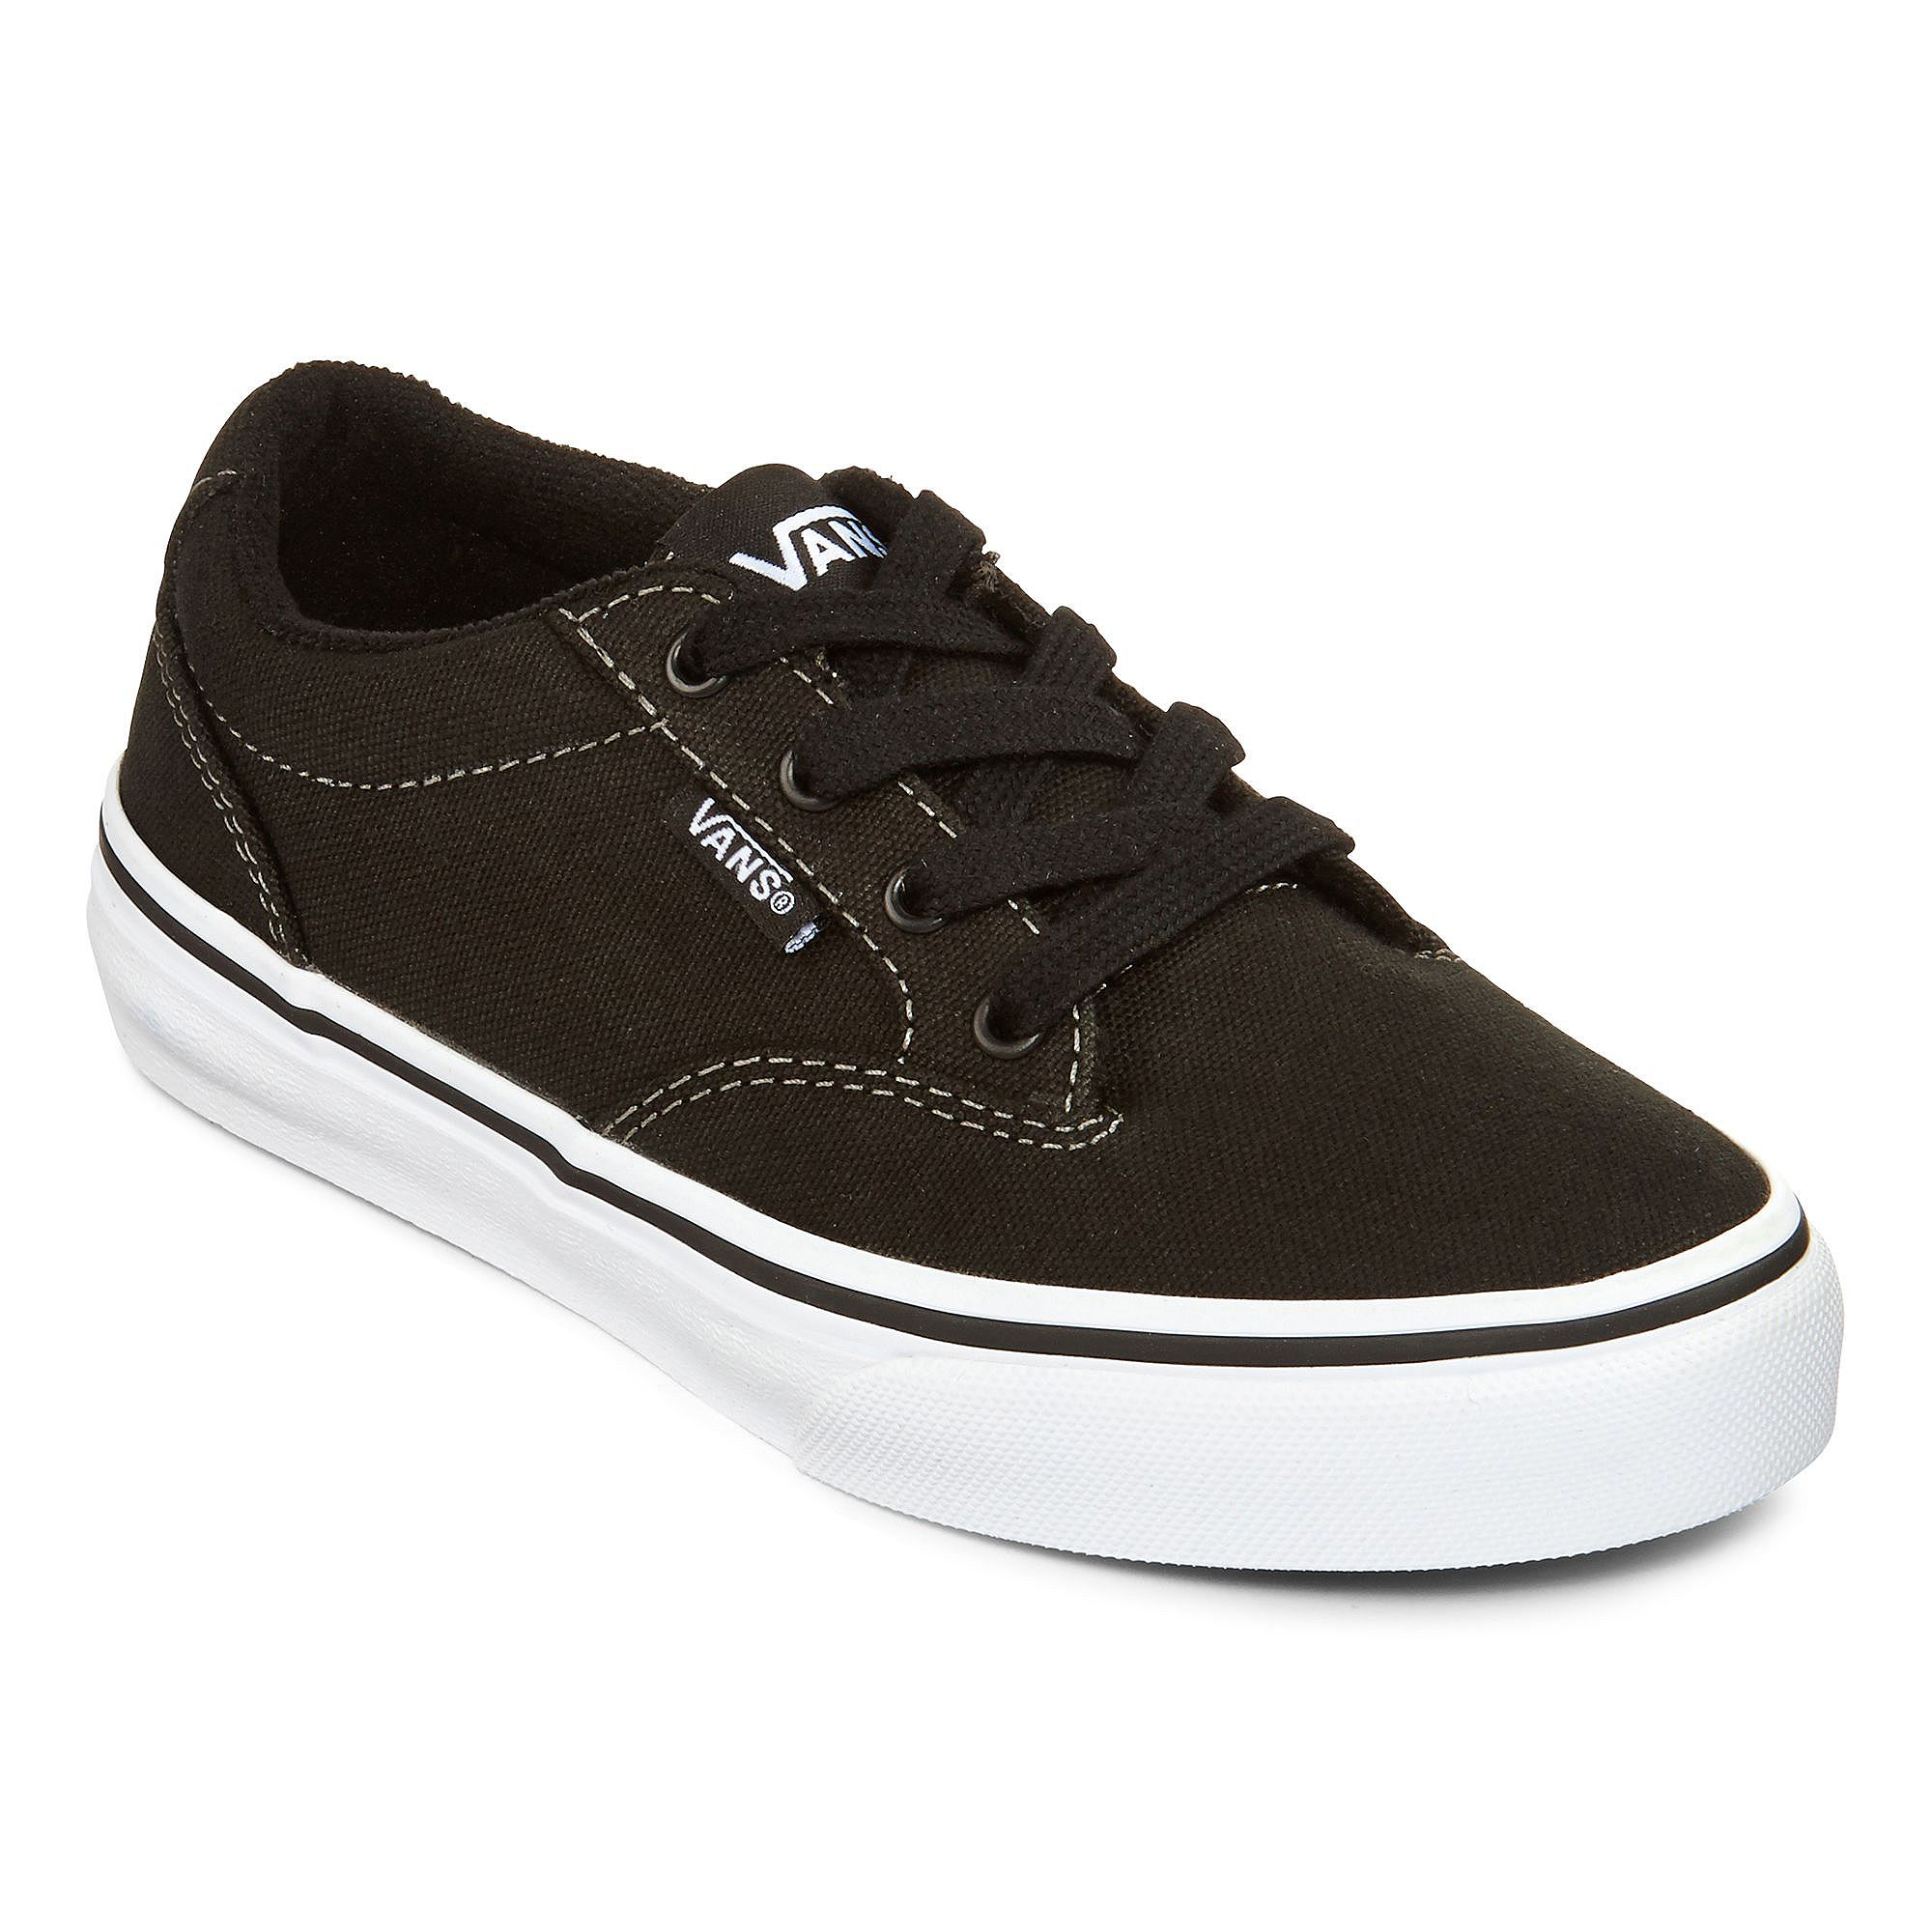 449806dc19 UPC 887040704033 - Vans Winston Boys Skate Shoes - Big Kids ...